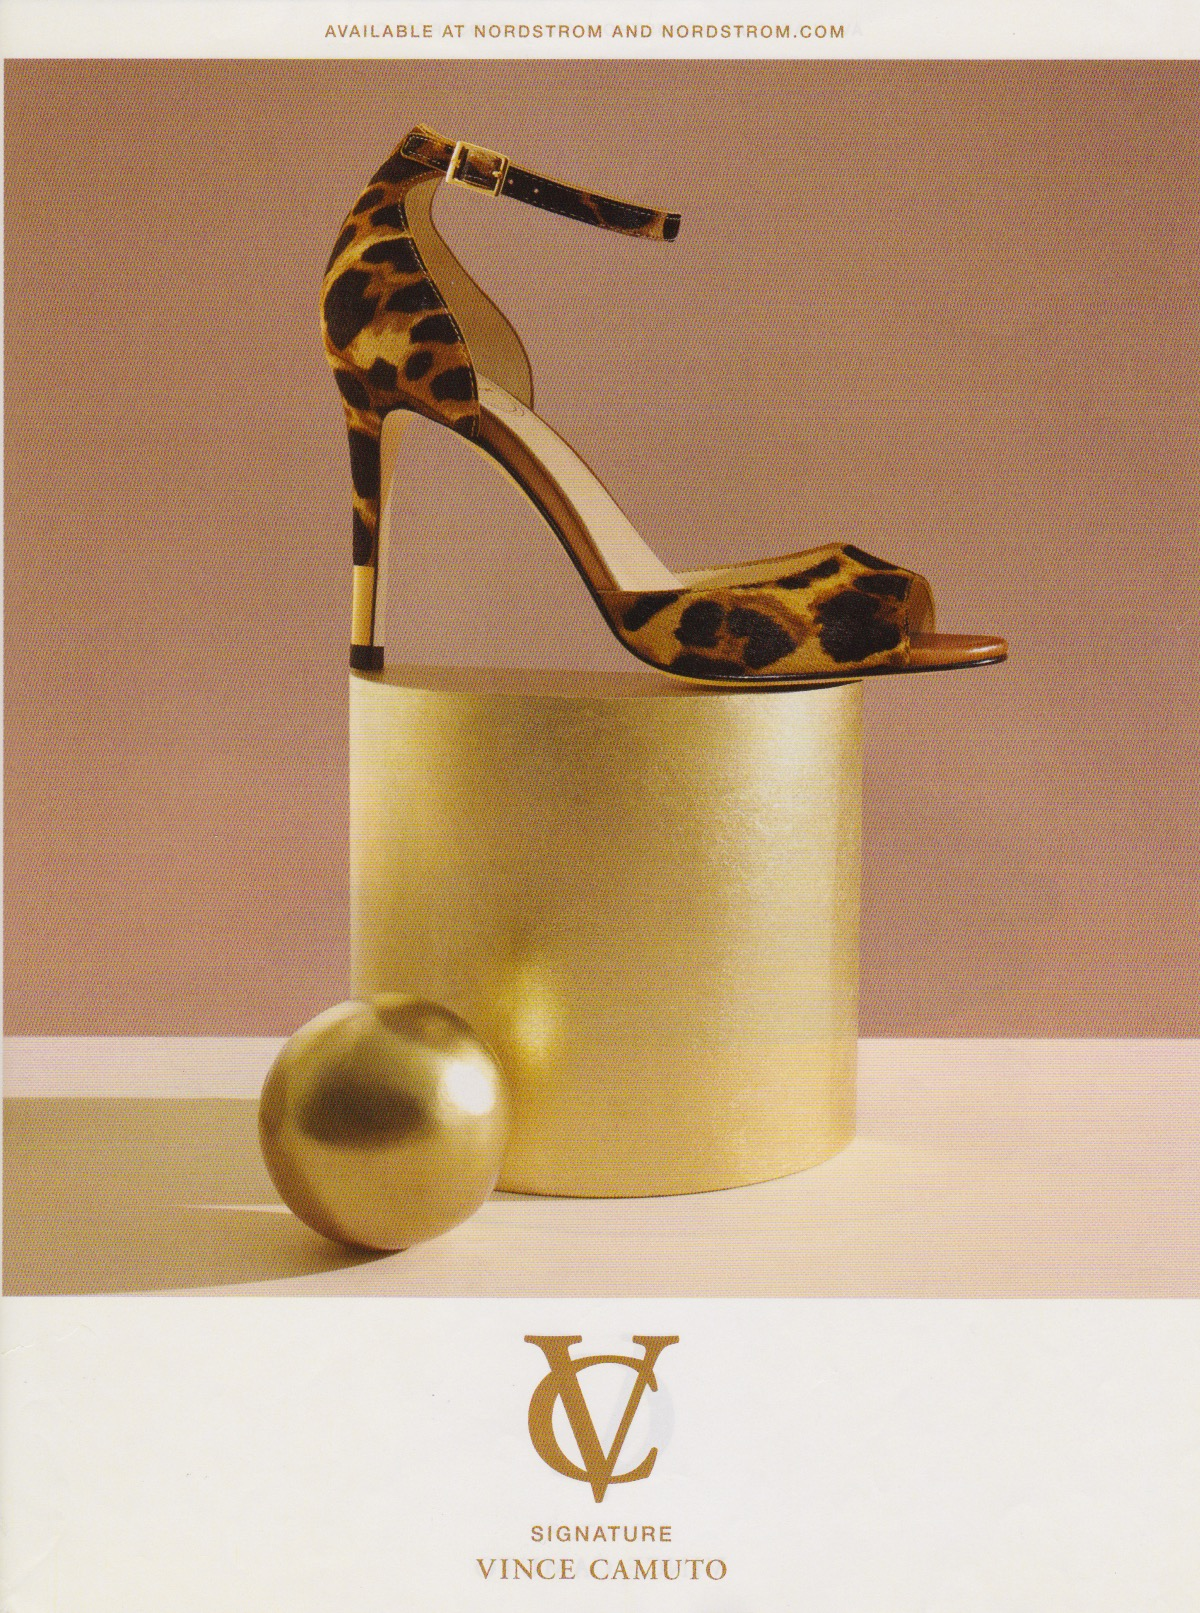 Nordstrom | Vince Camuto